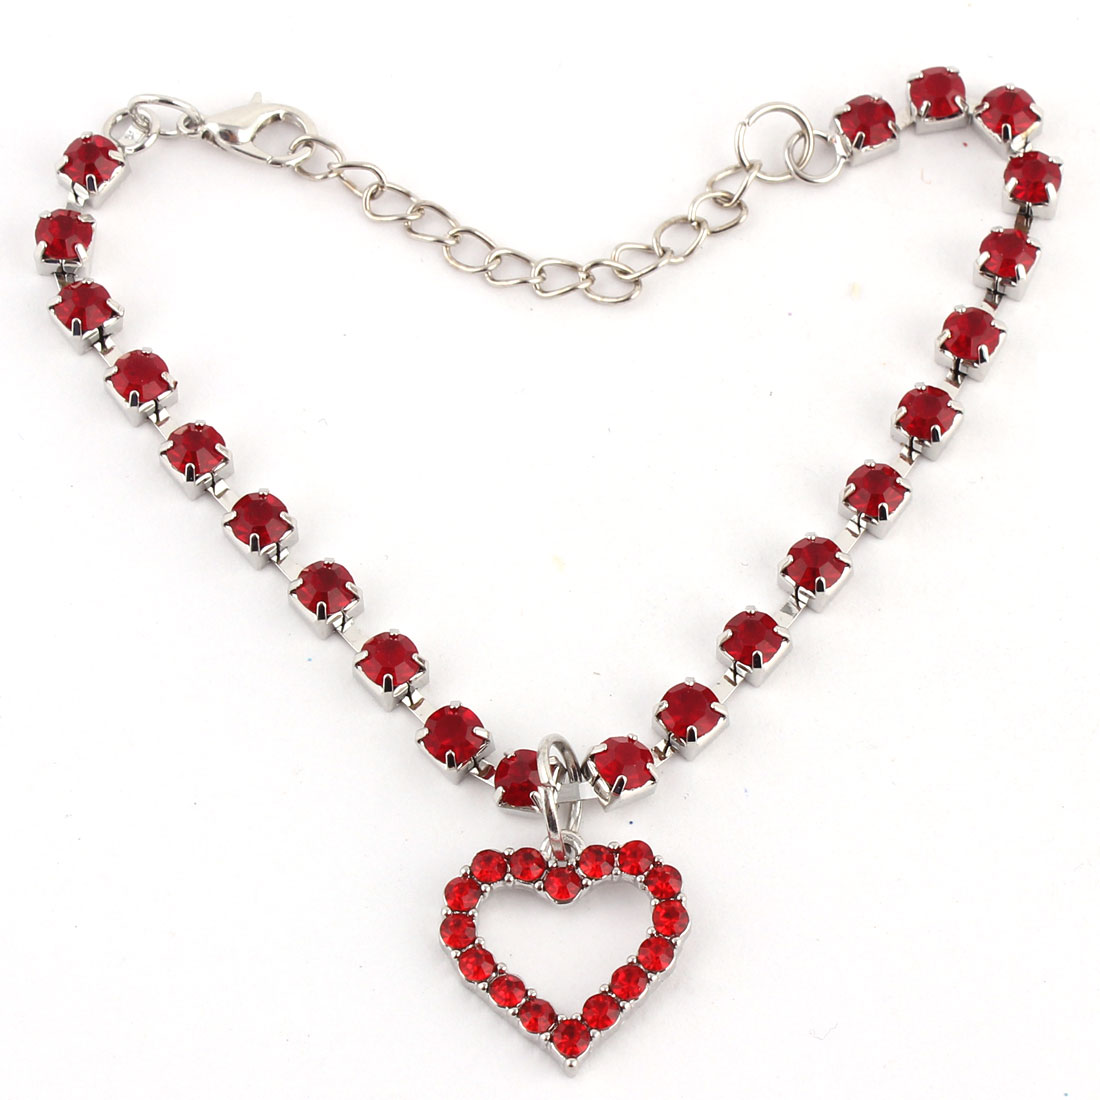 Dog Metal Beads Rhinestone Inlaid Heart Shaped Pendant Necklace Red